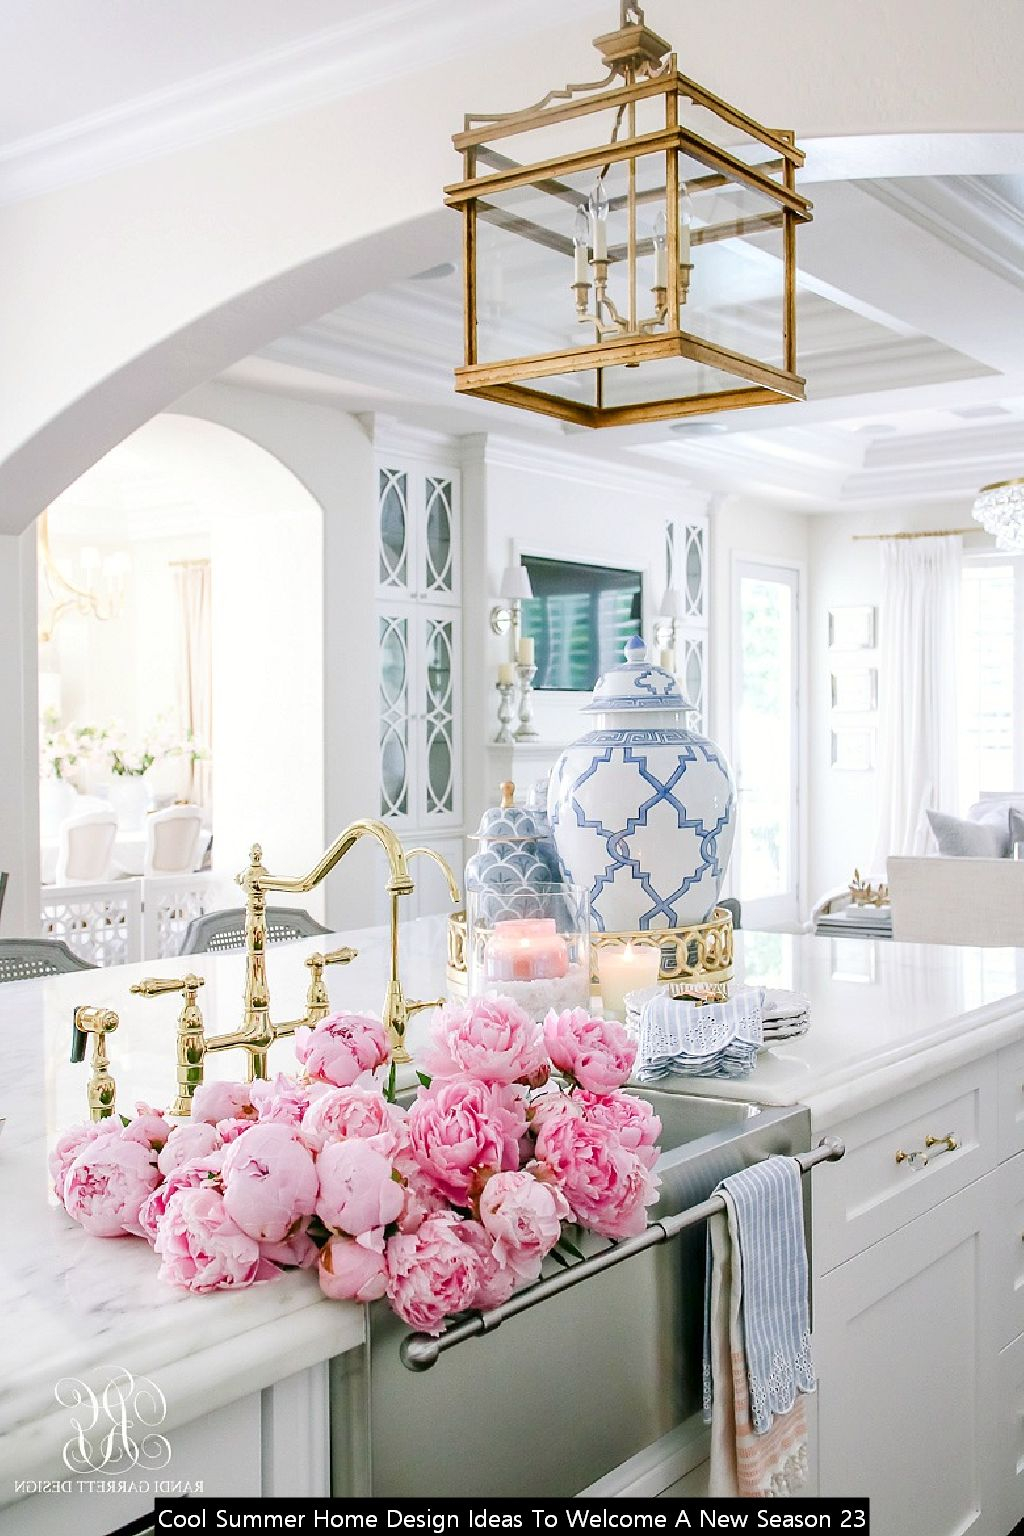 Cool Summer Home Design Ideas To Welcome A New Season 23